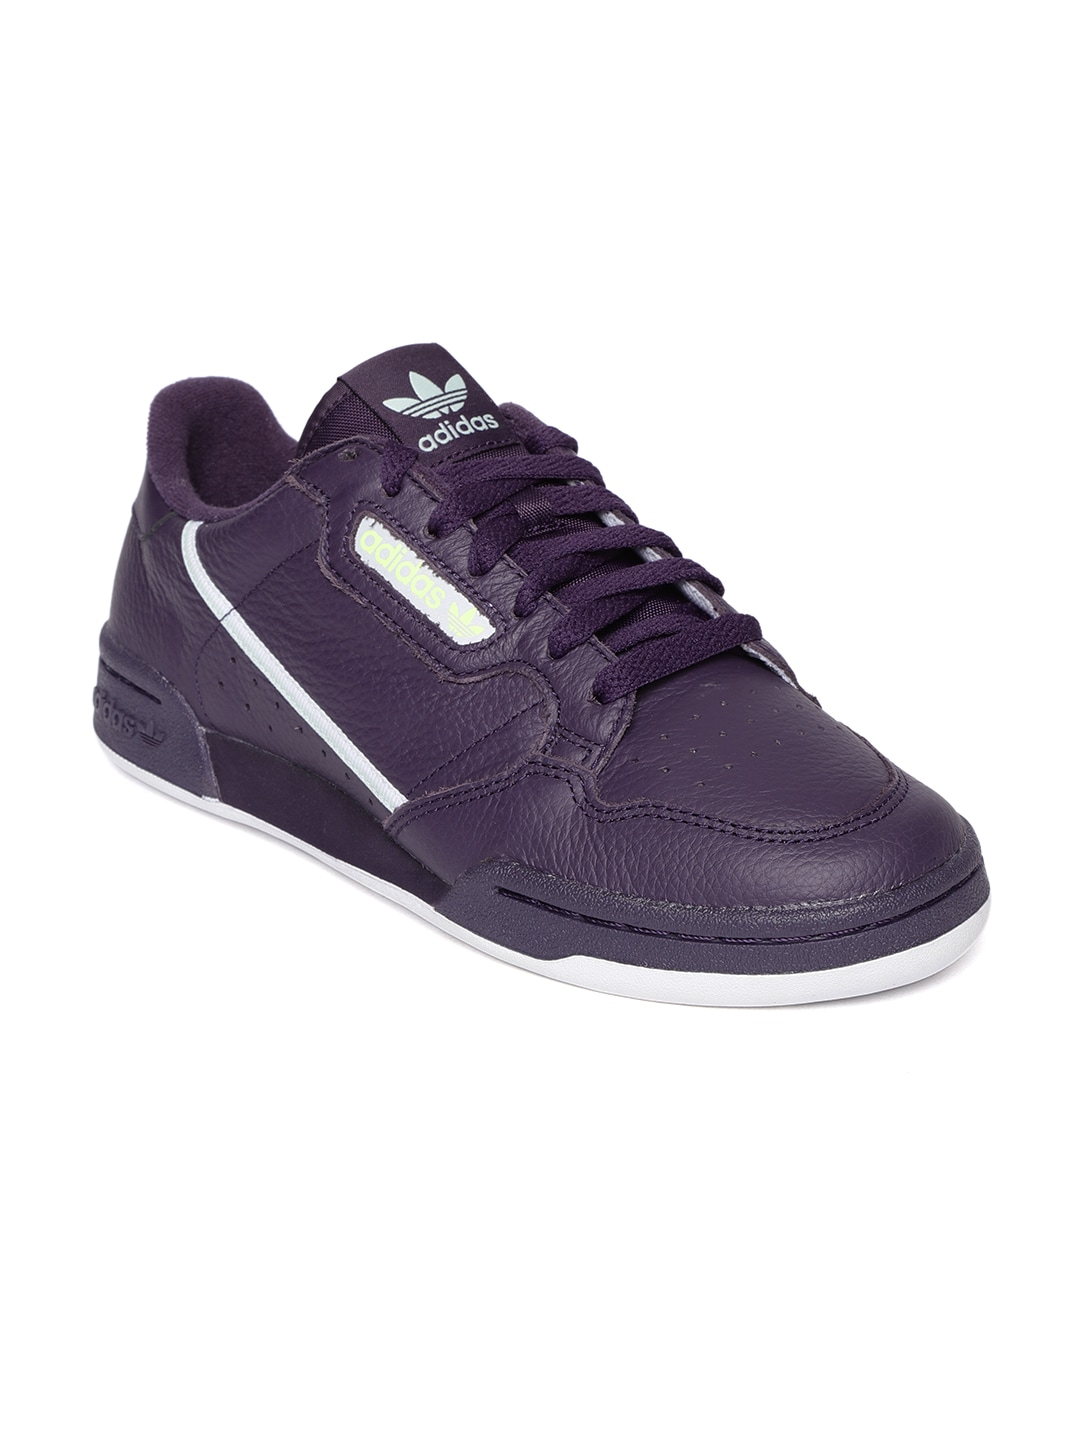 fb01783cde53 Women s Adidas Shoes - Buy Adidas Shoes for Women Online in India